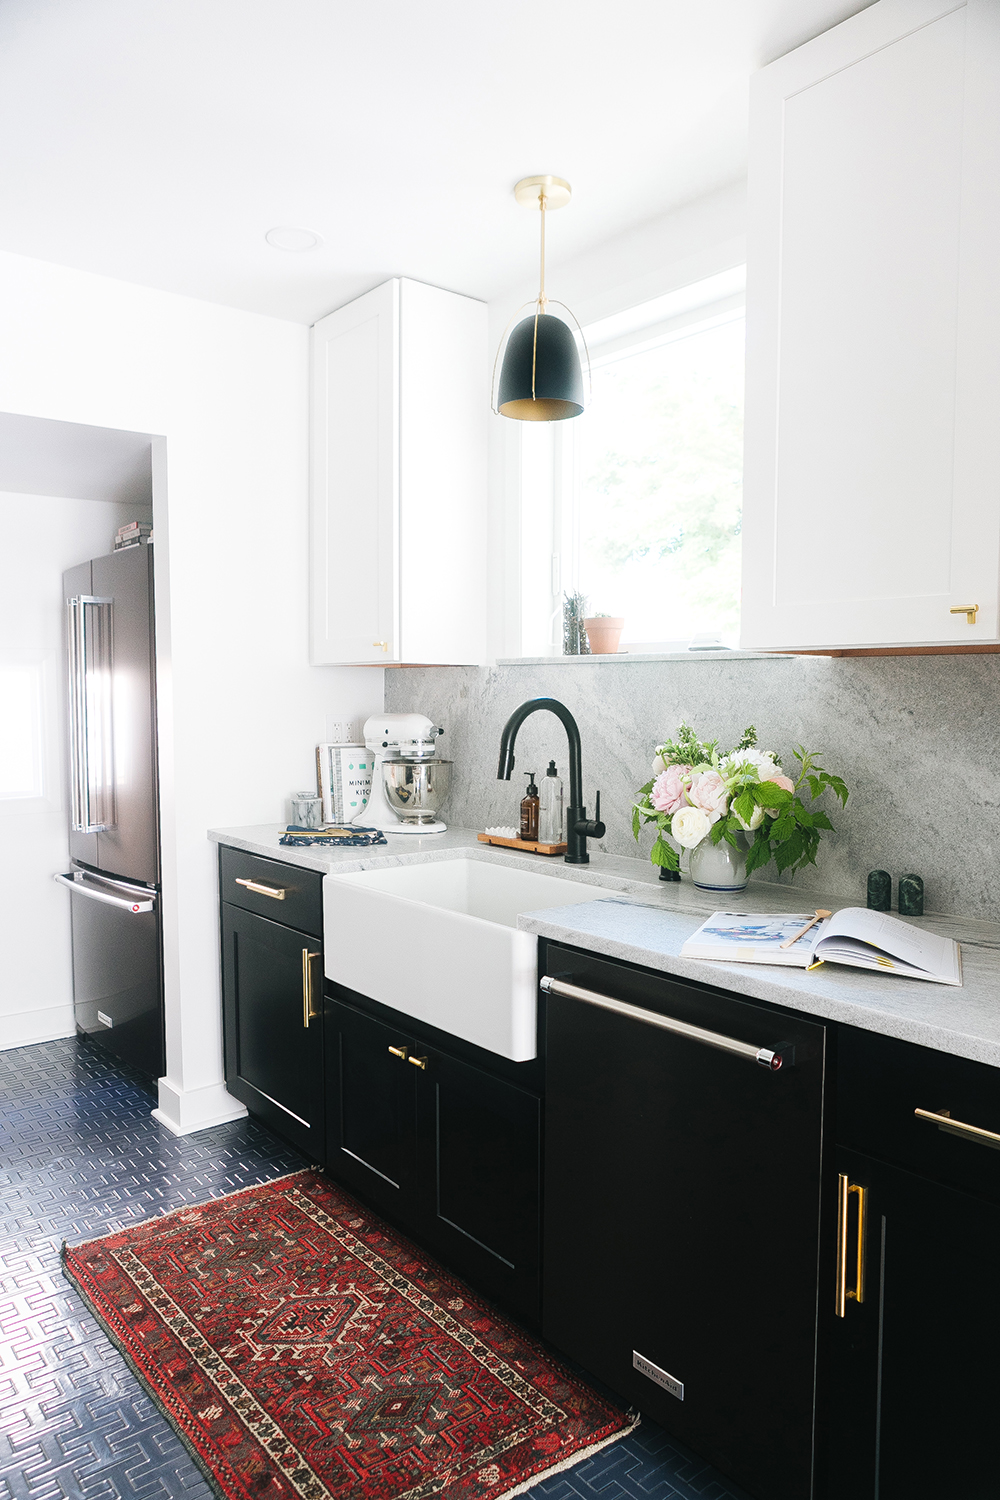 A Tiny Kitchen Reveal - roomfortuesday.com